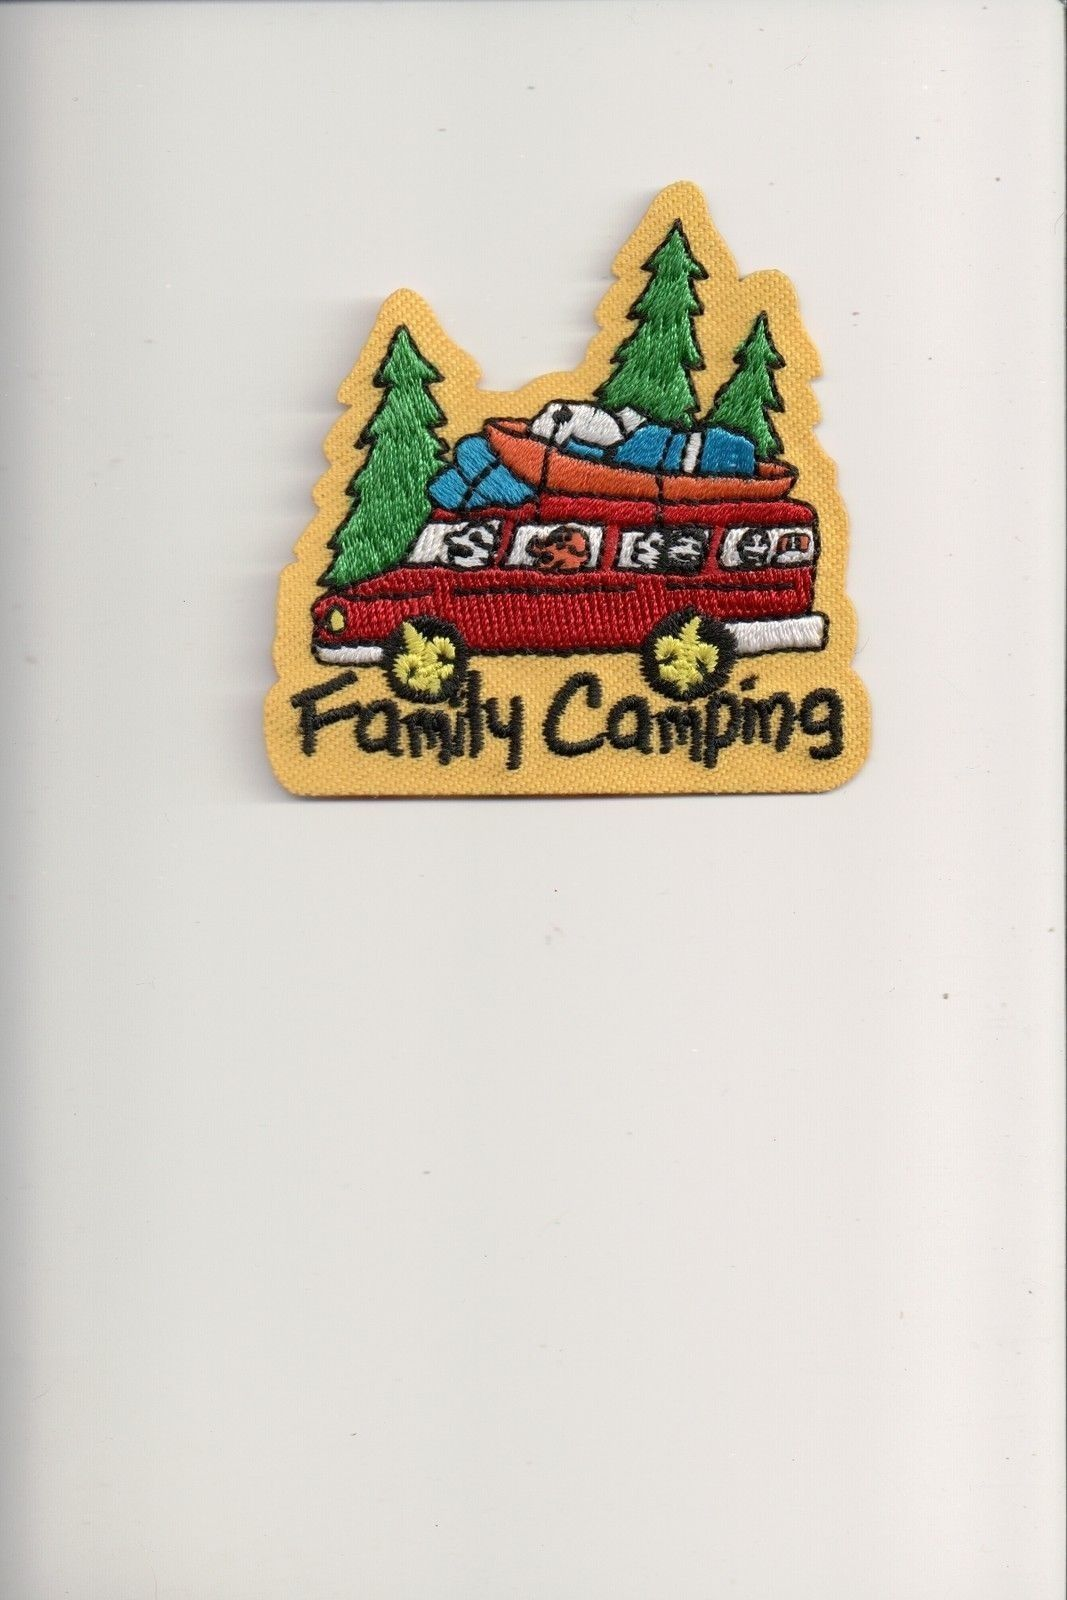 Family Camping patch